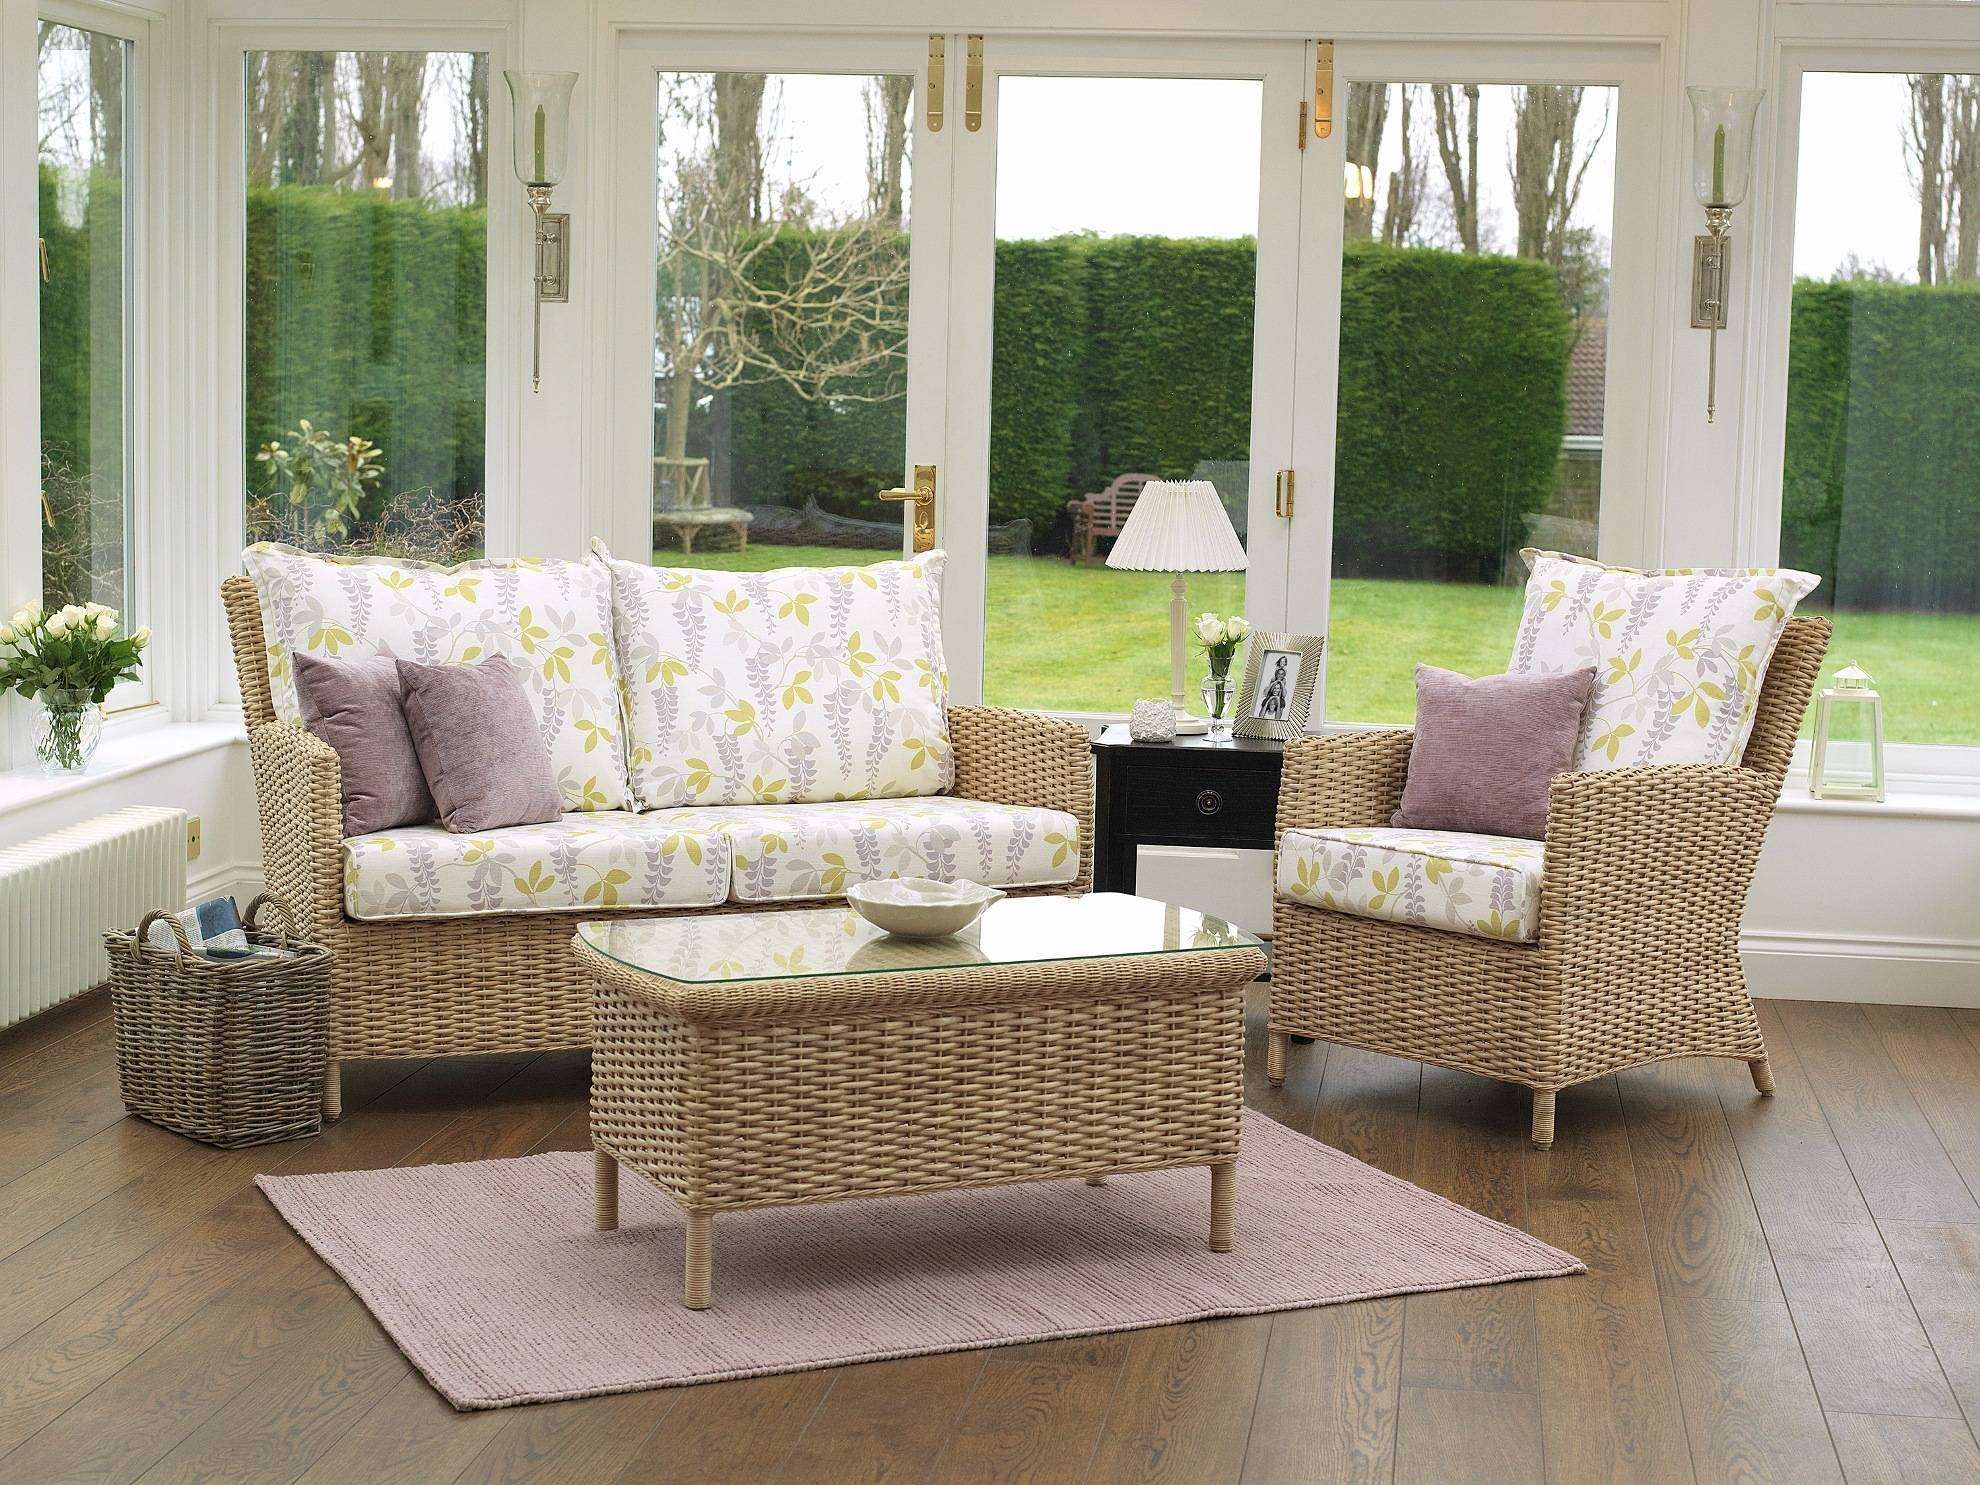 Decor Endearing Natural Wicker Ashley Furniture Replacement Regarding White  Cane Sofas Image 13 Of